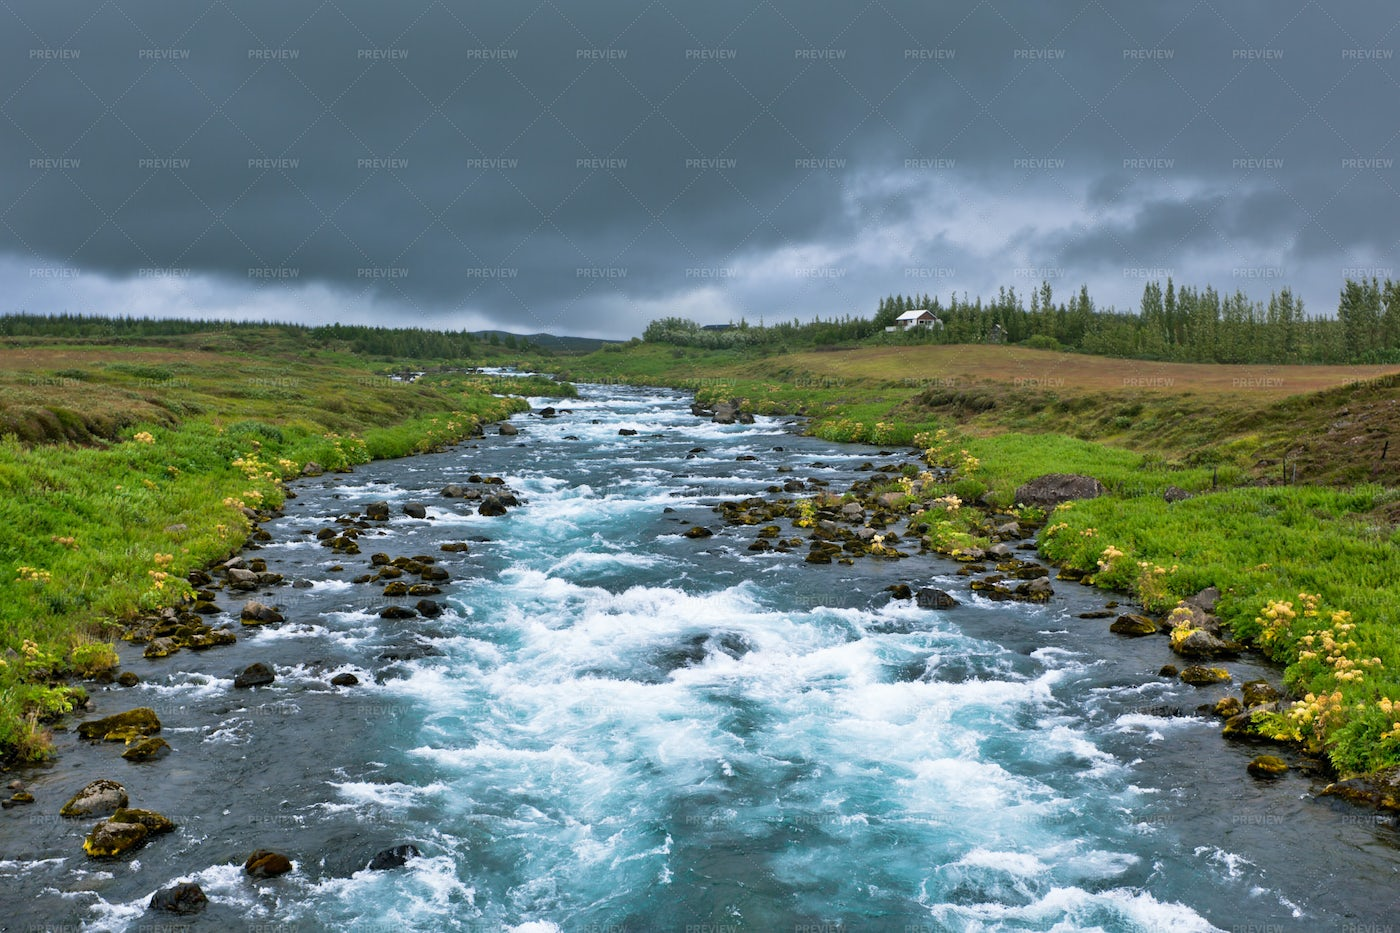 Iceland Landscape With River: Stock Photos